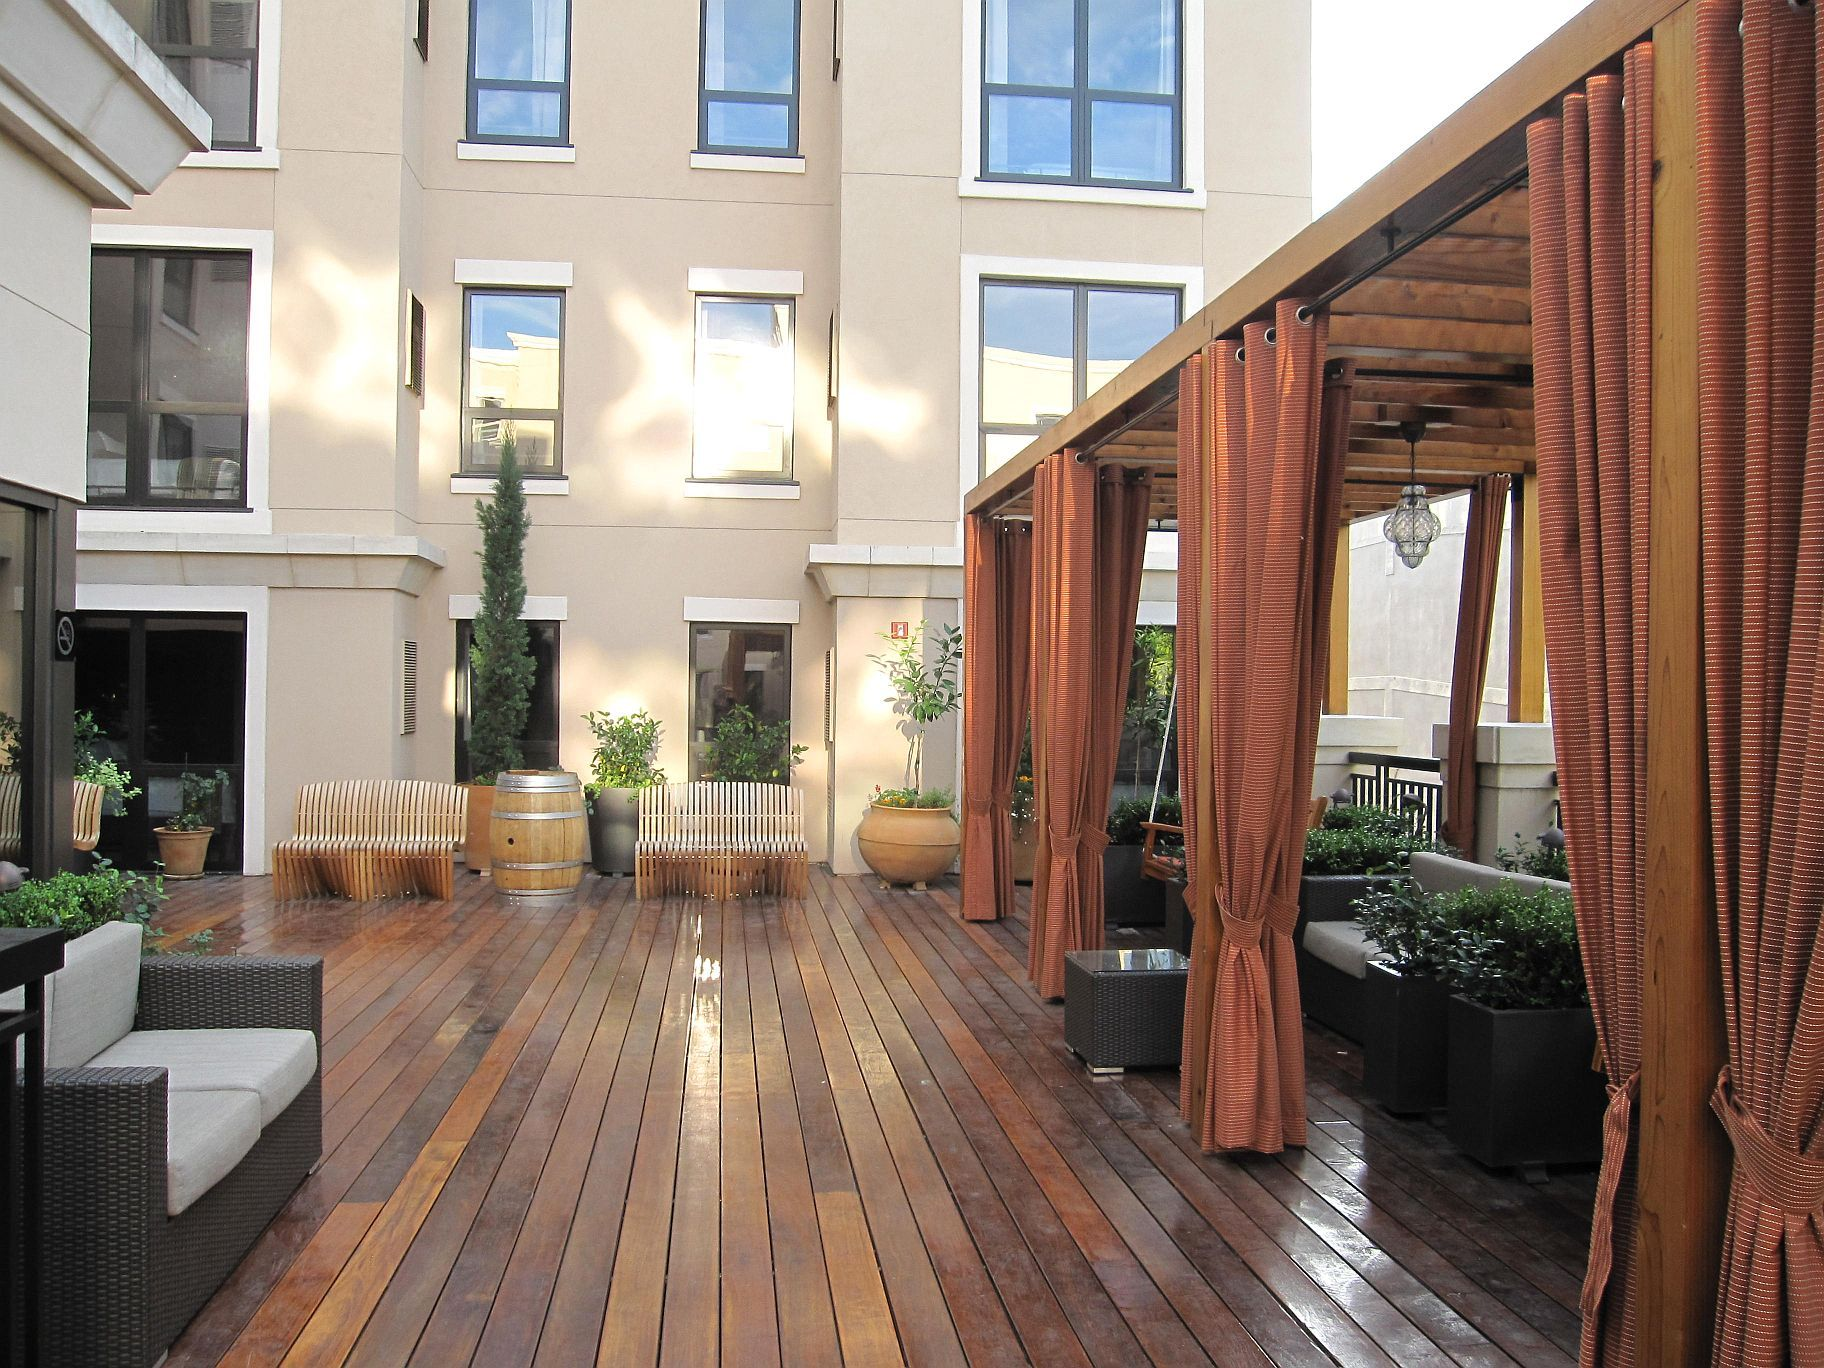 Hotel Andaz Rooftop Oasis Downtown Napa Ca Sparkling Wine Country Is Only Minutes Away